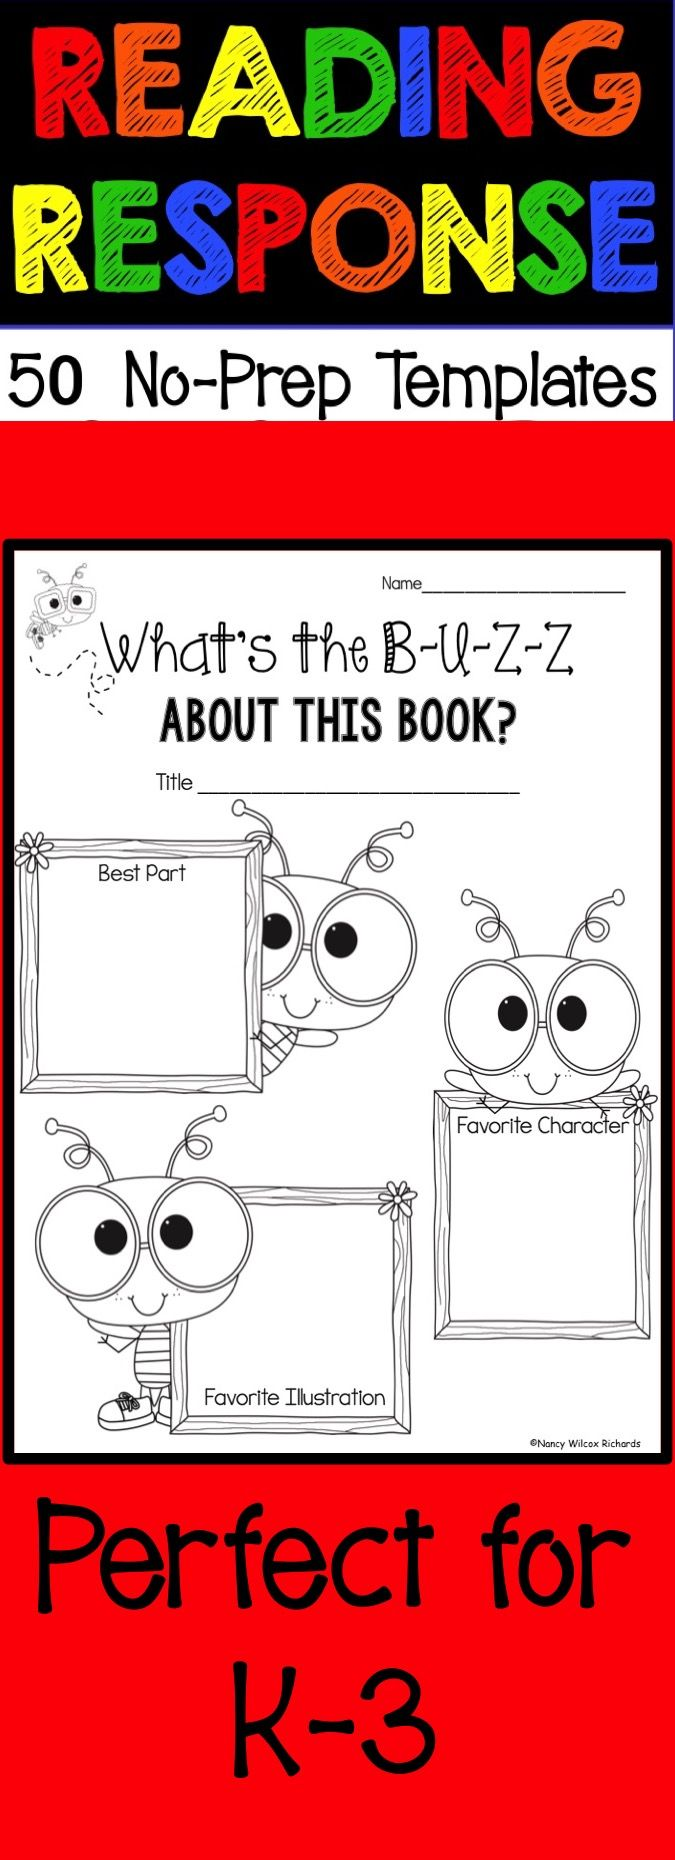 I Love These Cute Reading Response Templates K 3 Reading Response Elementary Reading Writing Activities [ 1860 x 675 Pixel ]